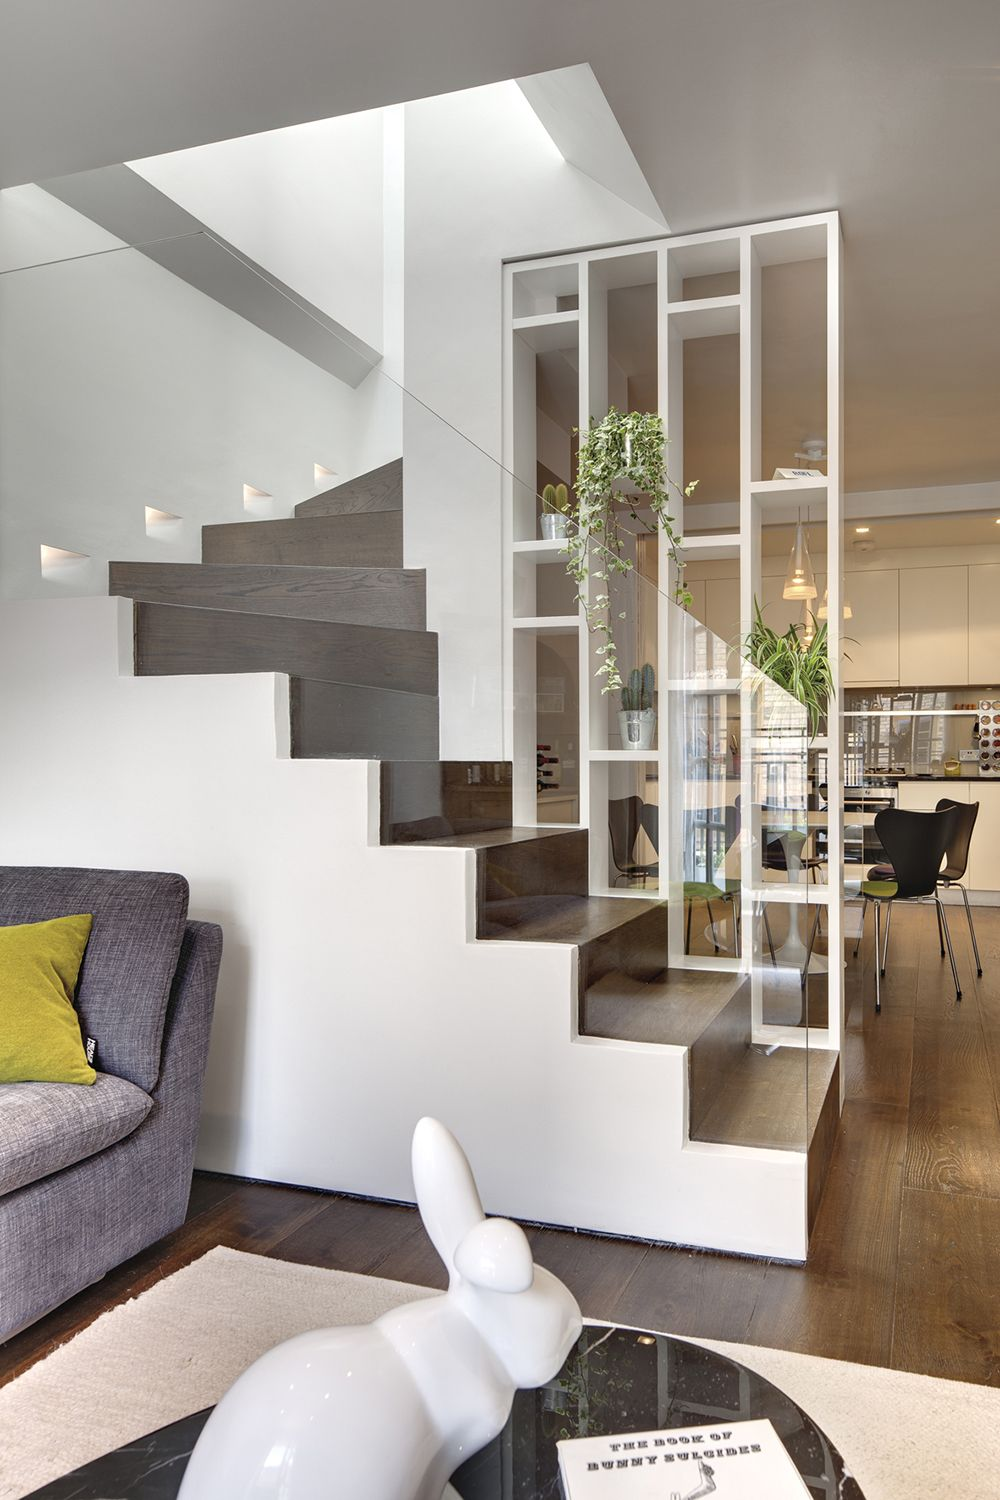 13 Brilliant Ideas About Partition Wall Design To Blow You Away Home Stairs Design Contemporary Stairs Stairs Design